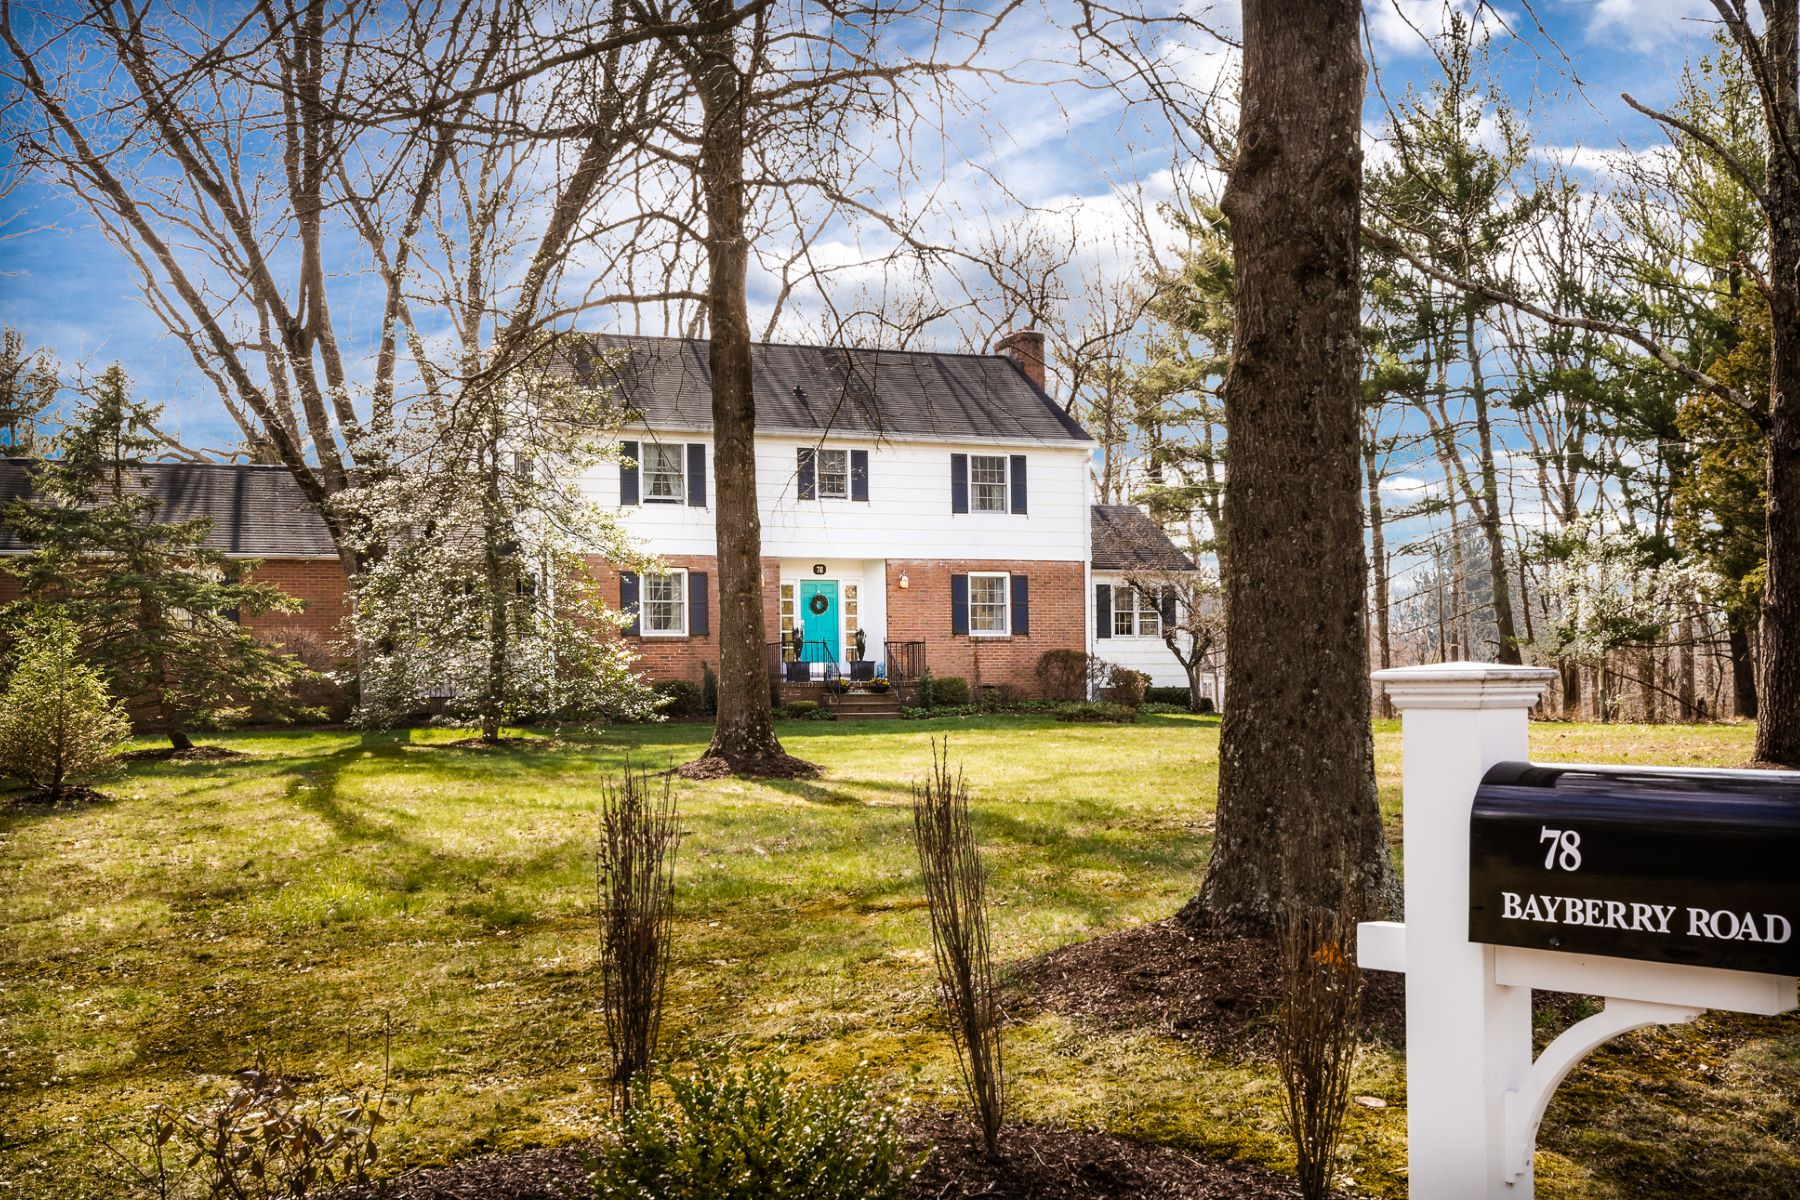 Villa per Vendita alle ore In Hopewell With A Princeton Address - Hopewell Township 78 Bayberry Road Princeton, New Jersey, 0854 Stati Uniti